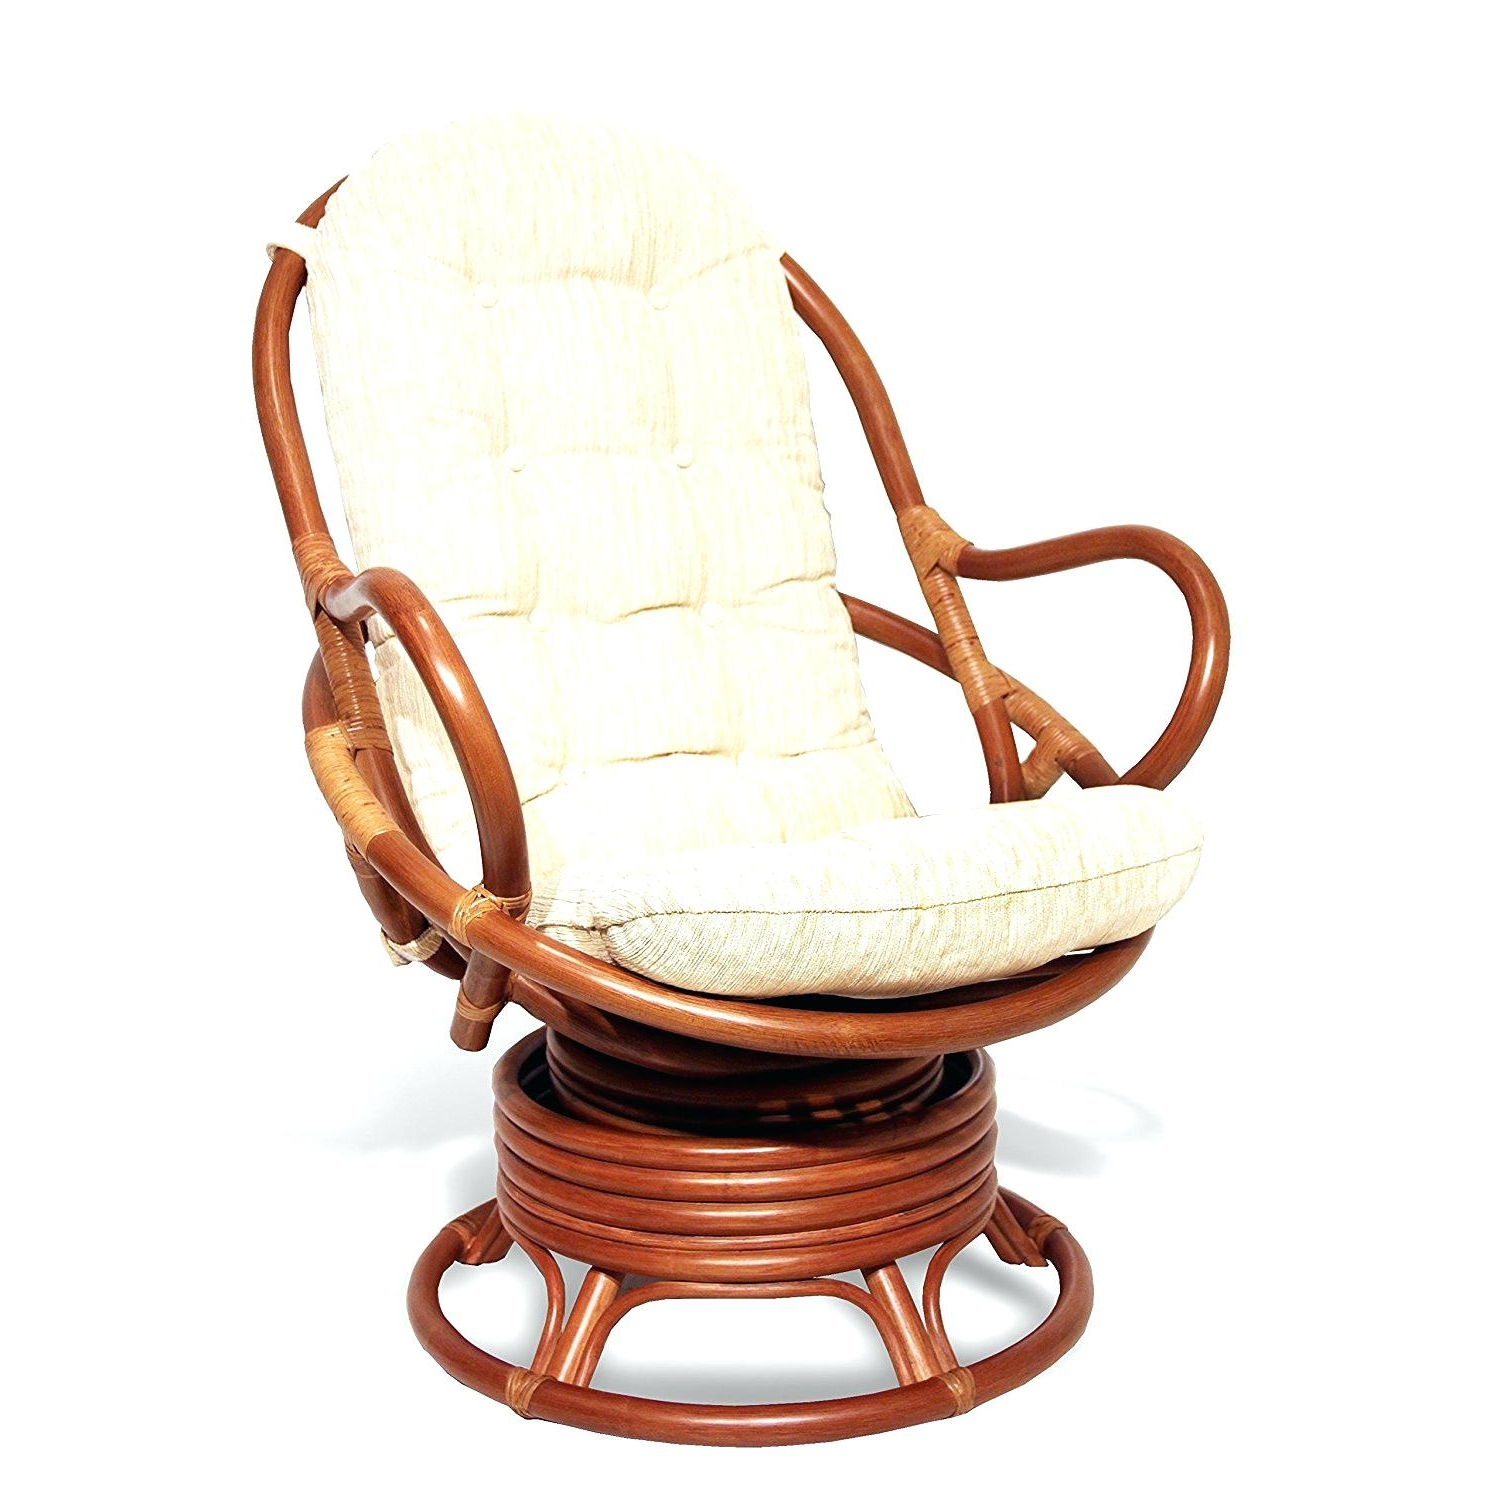 Wicker Rocking Chairs With Cushions Throughout Trendy Cushion : Wicker Rocking Chair Followfirefish Com Cushions Cushion (View 19 of 20)